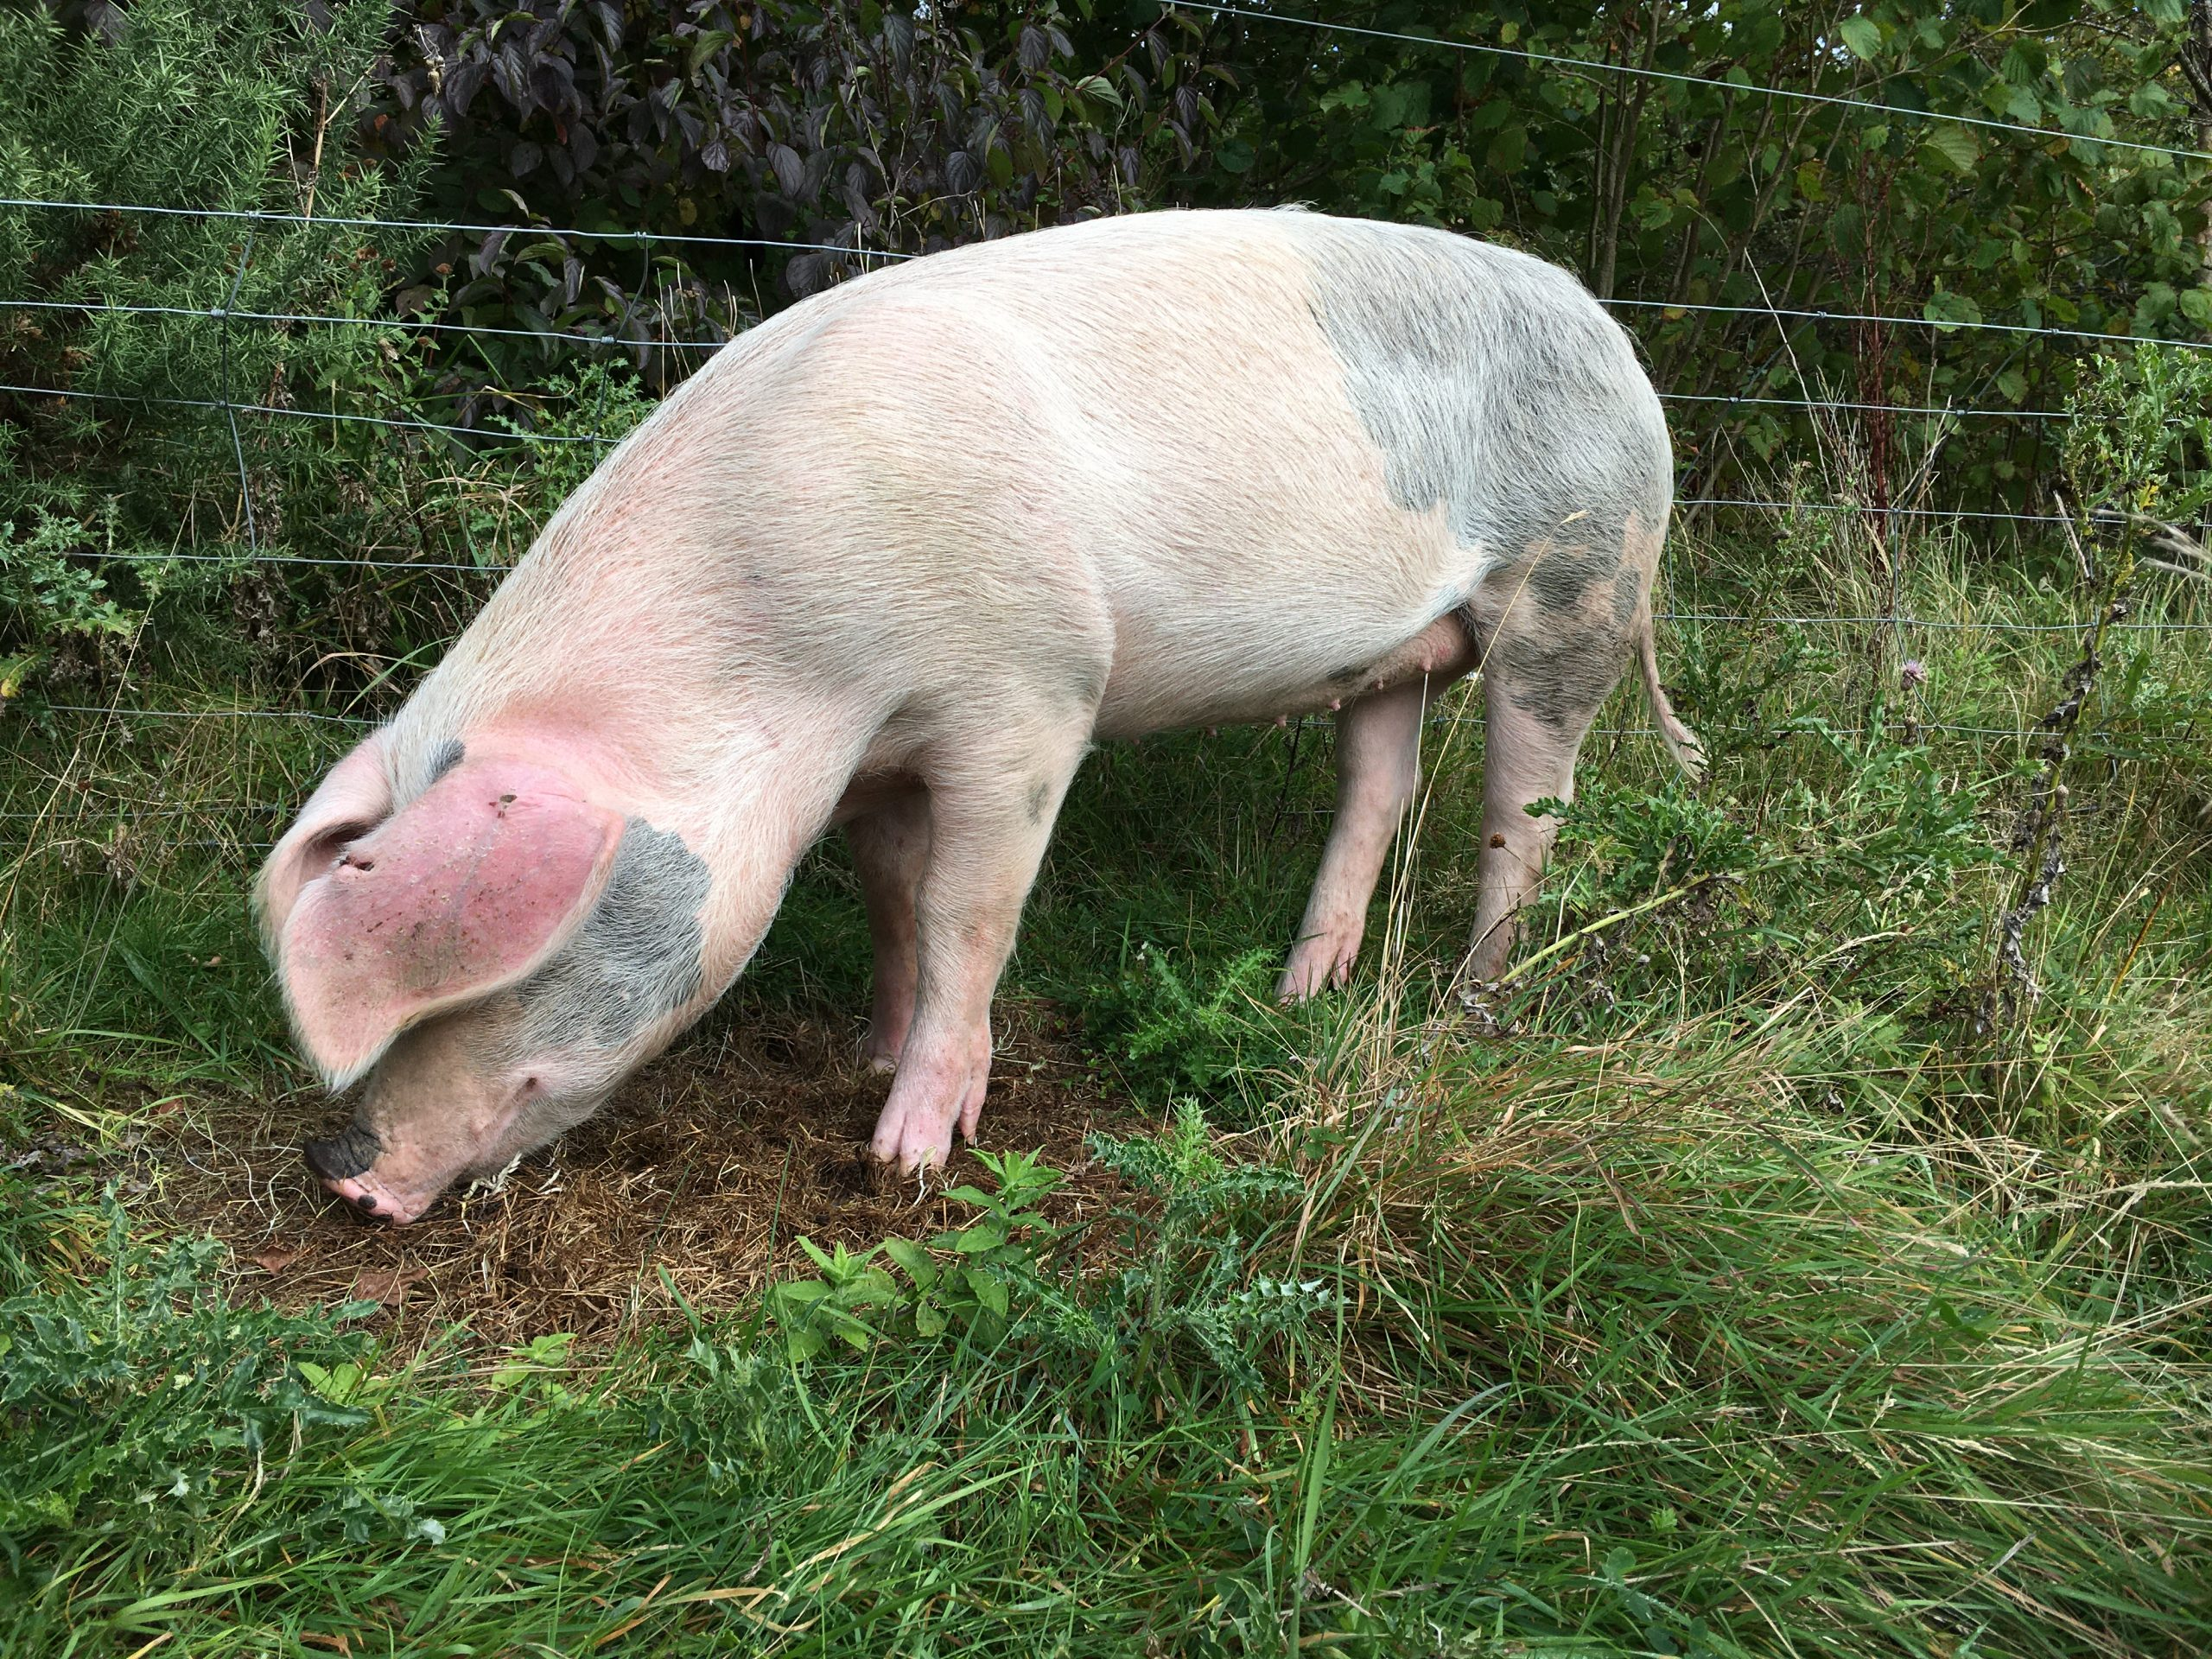 Rewilding the land with pigs